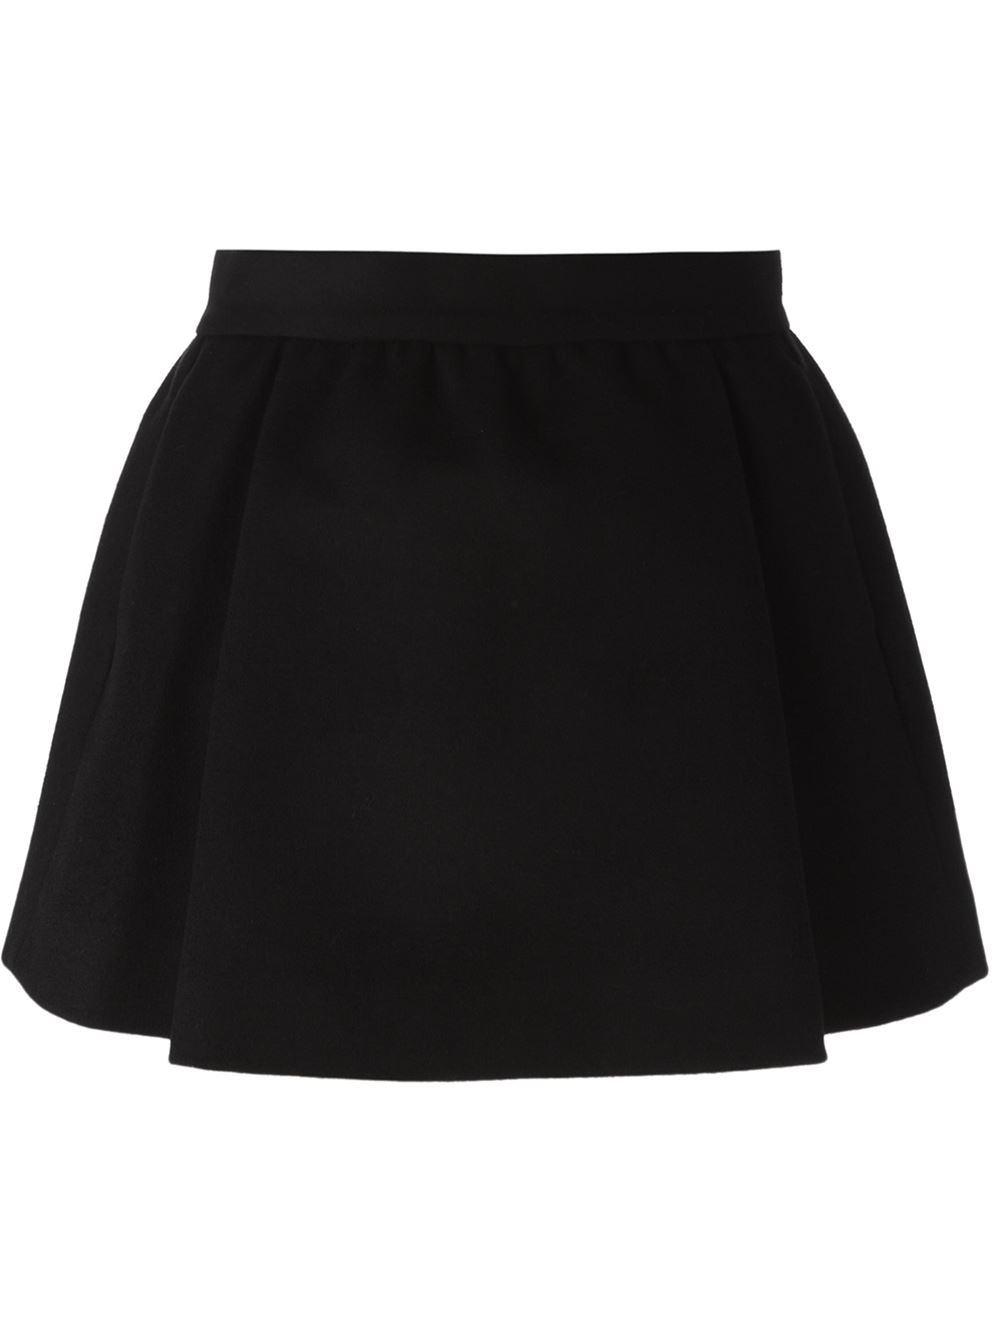 dsquared 178 pleated skirt in black lyst